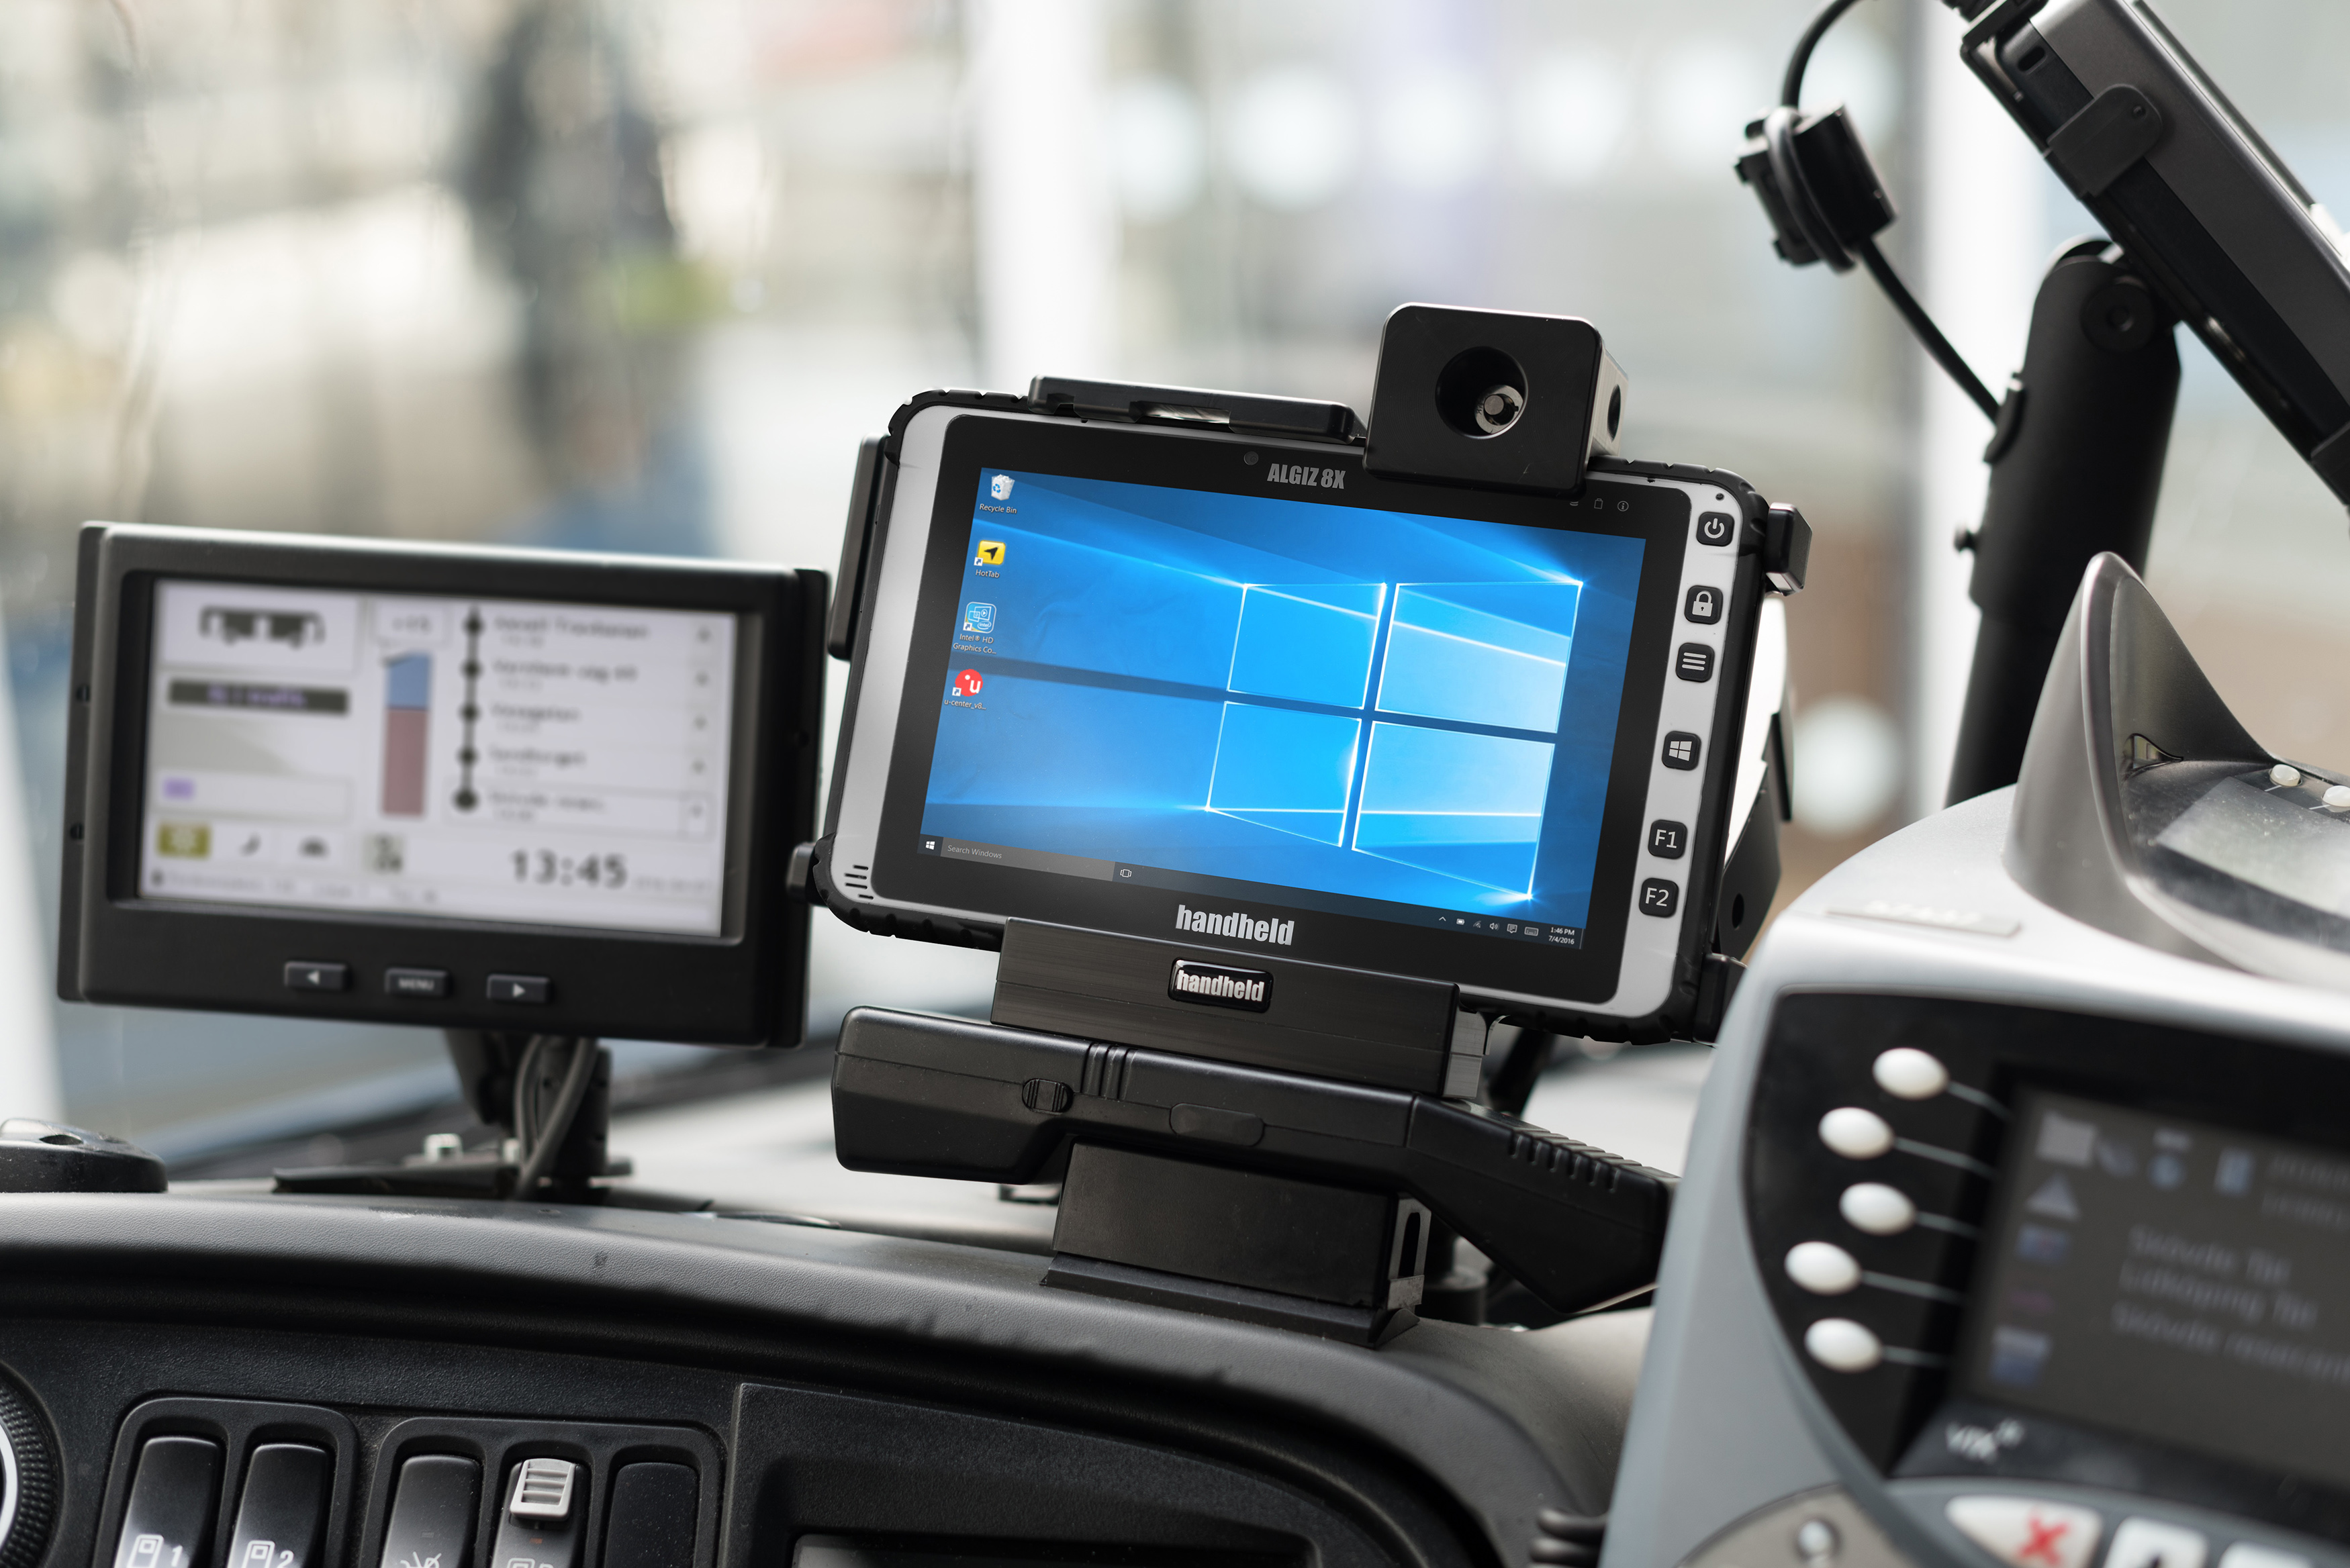 algiz-8x-rugged-tablet-vehicle-mount